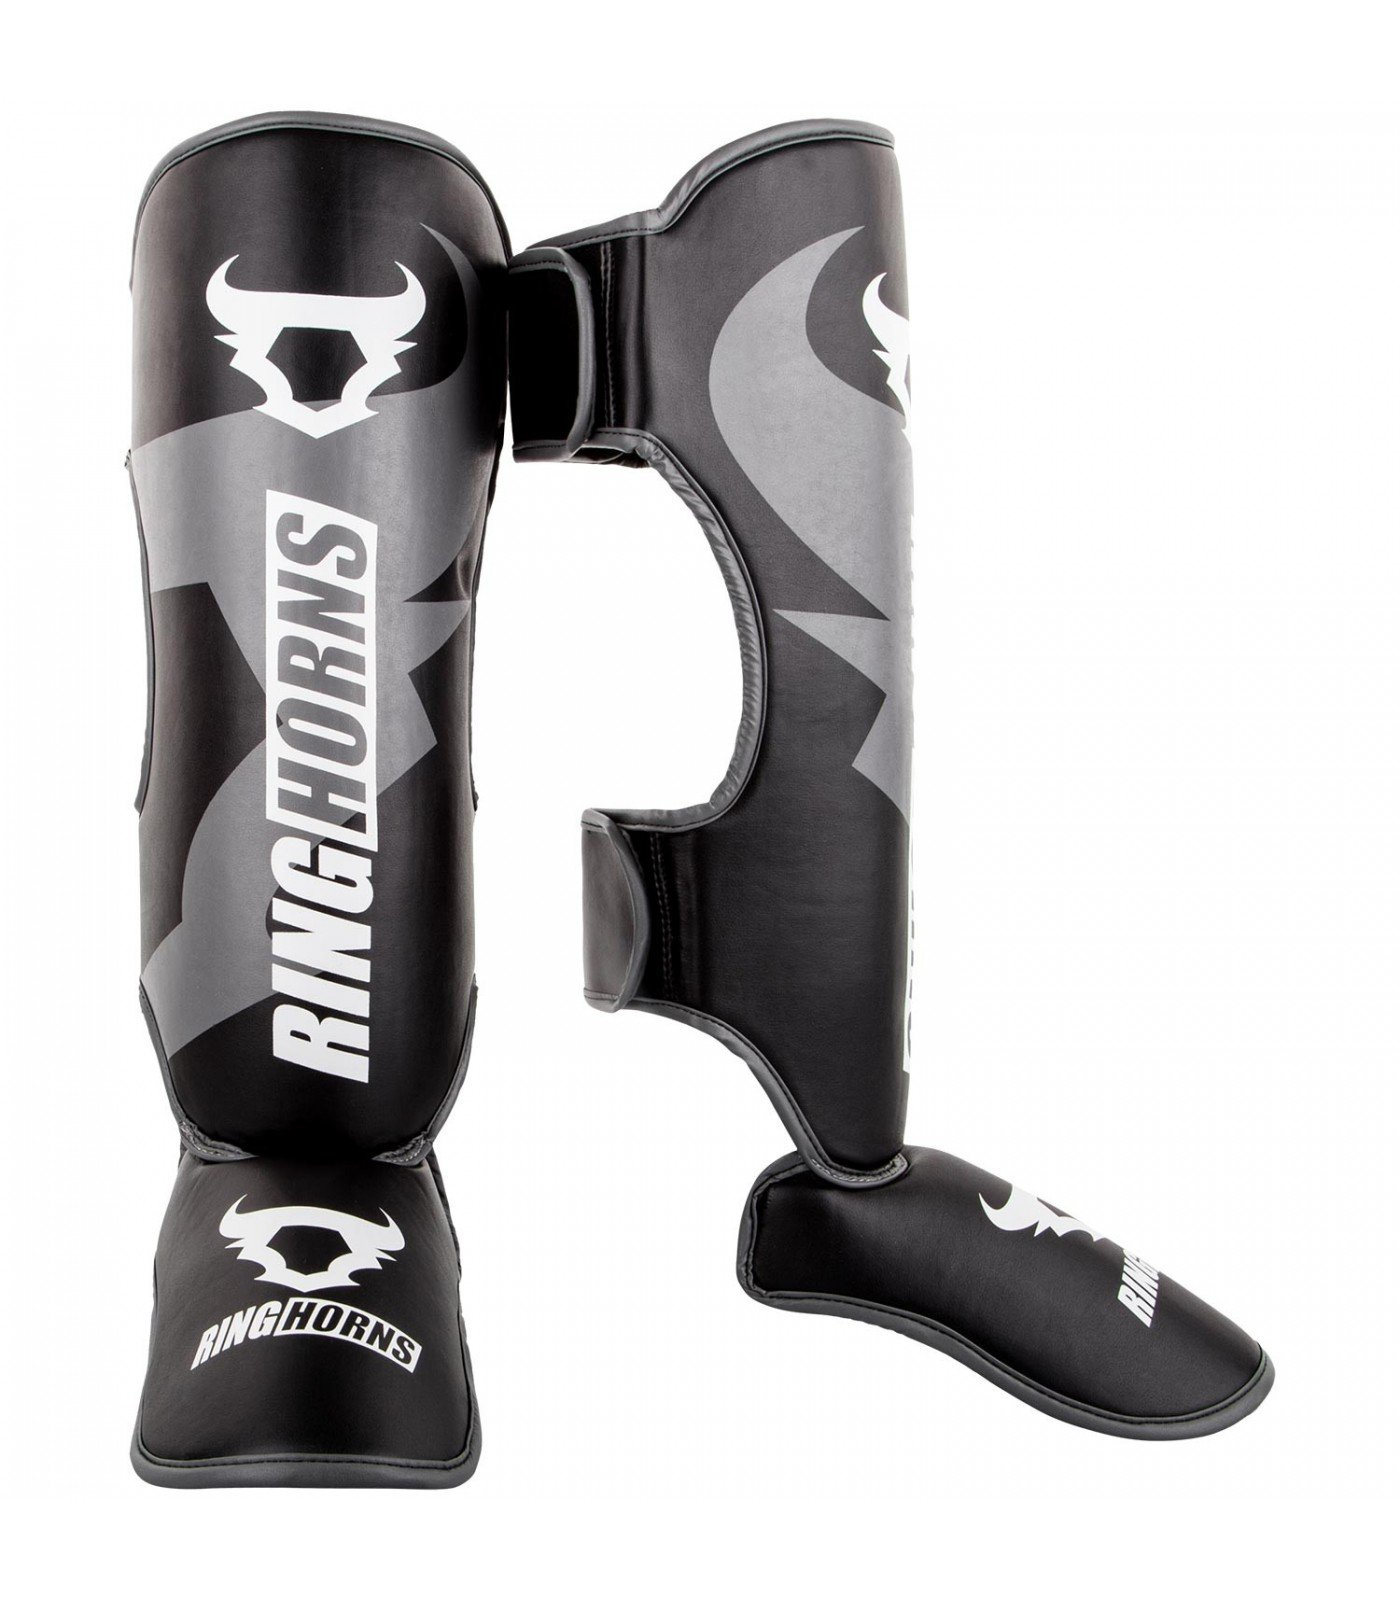 Протектори за крака - Ringhorns Charger Shinguards Insteps - Black​